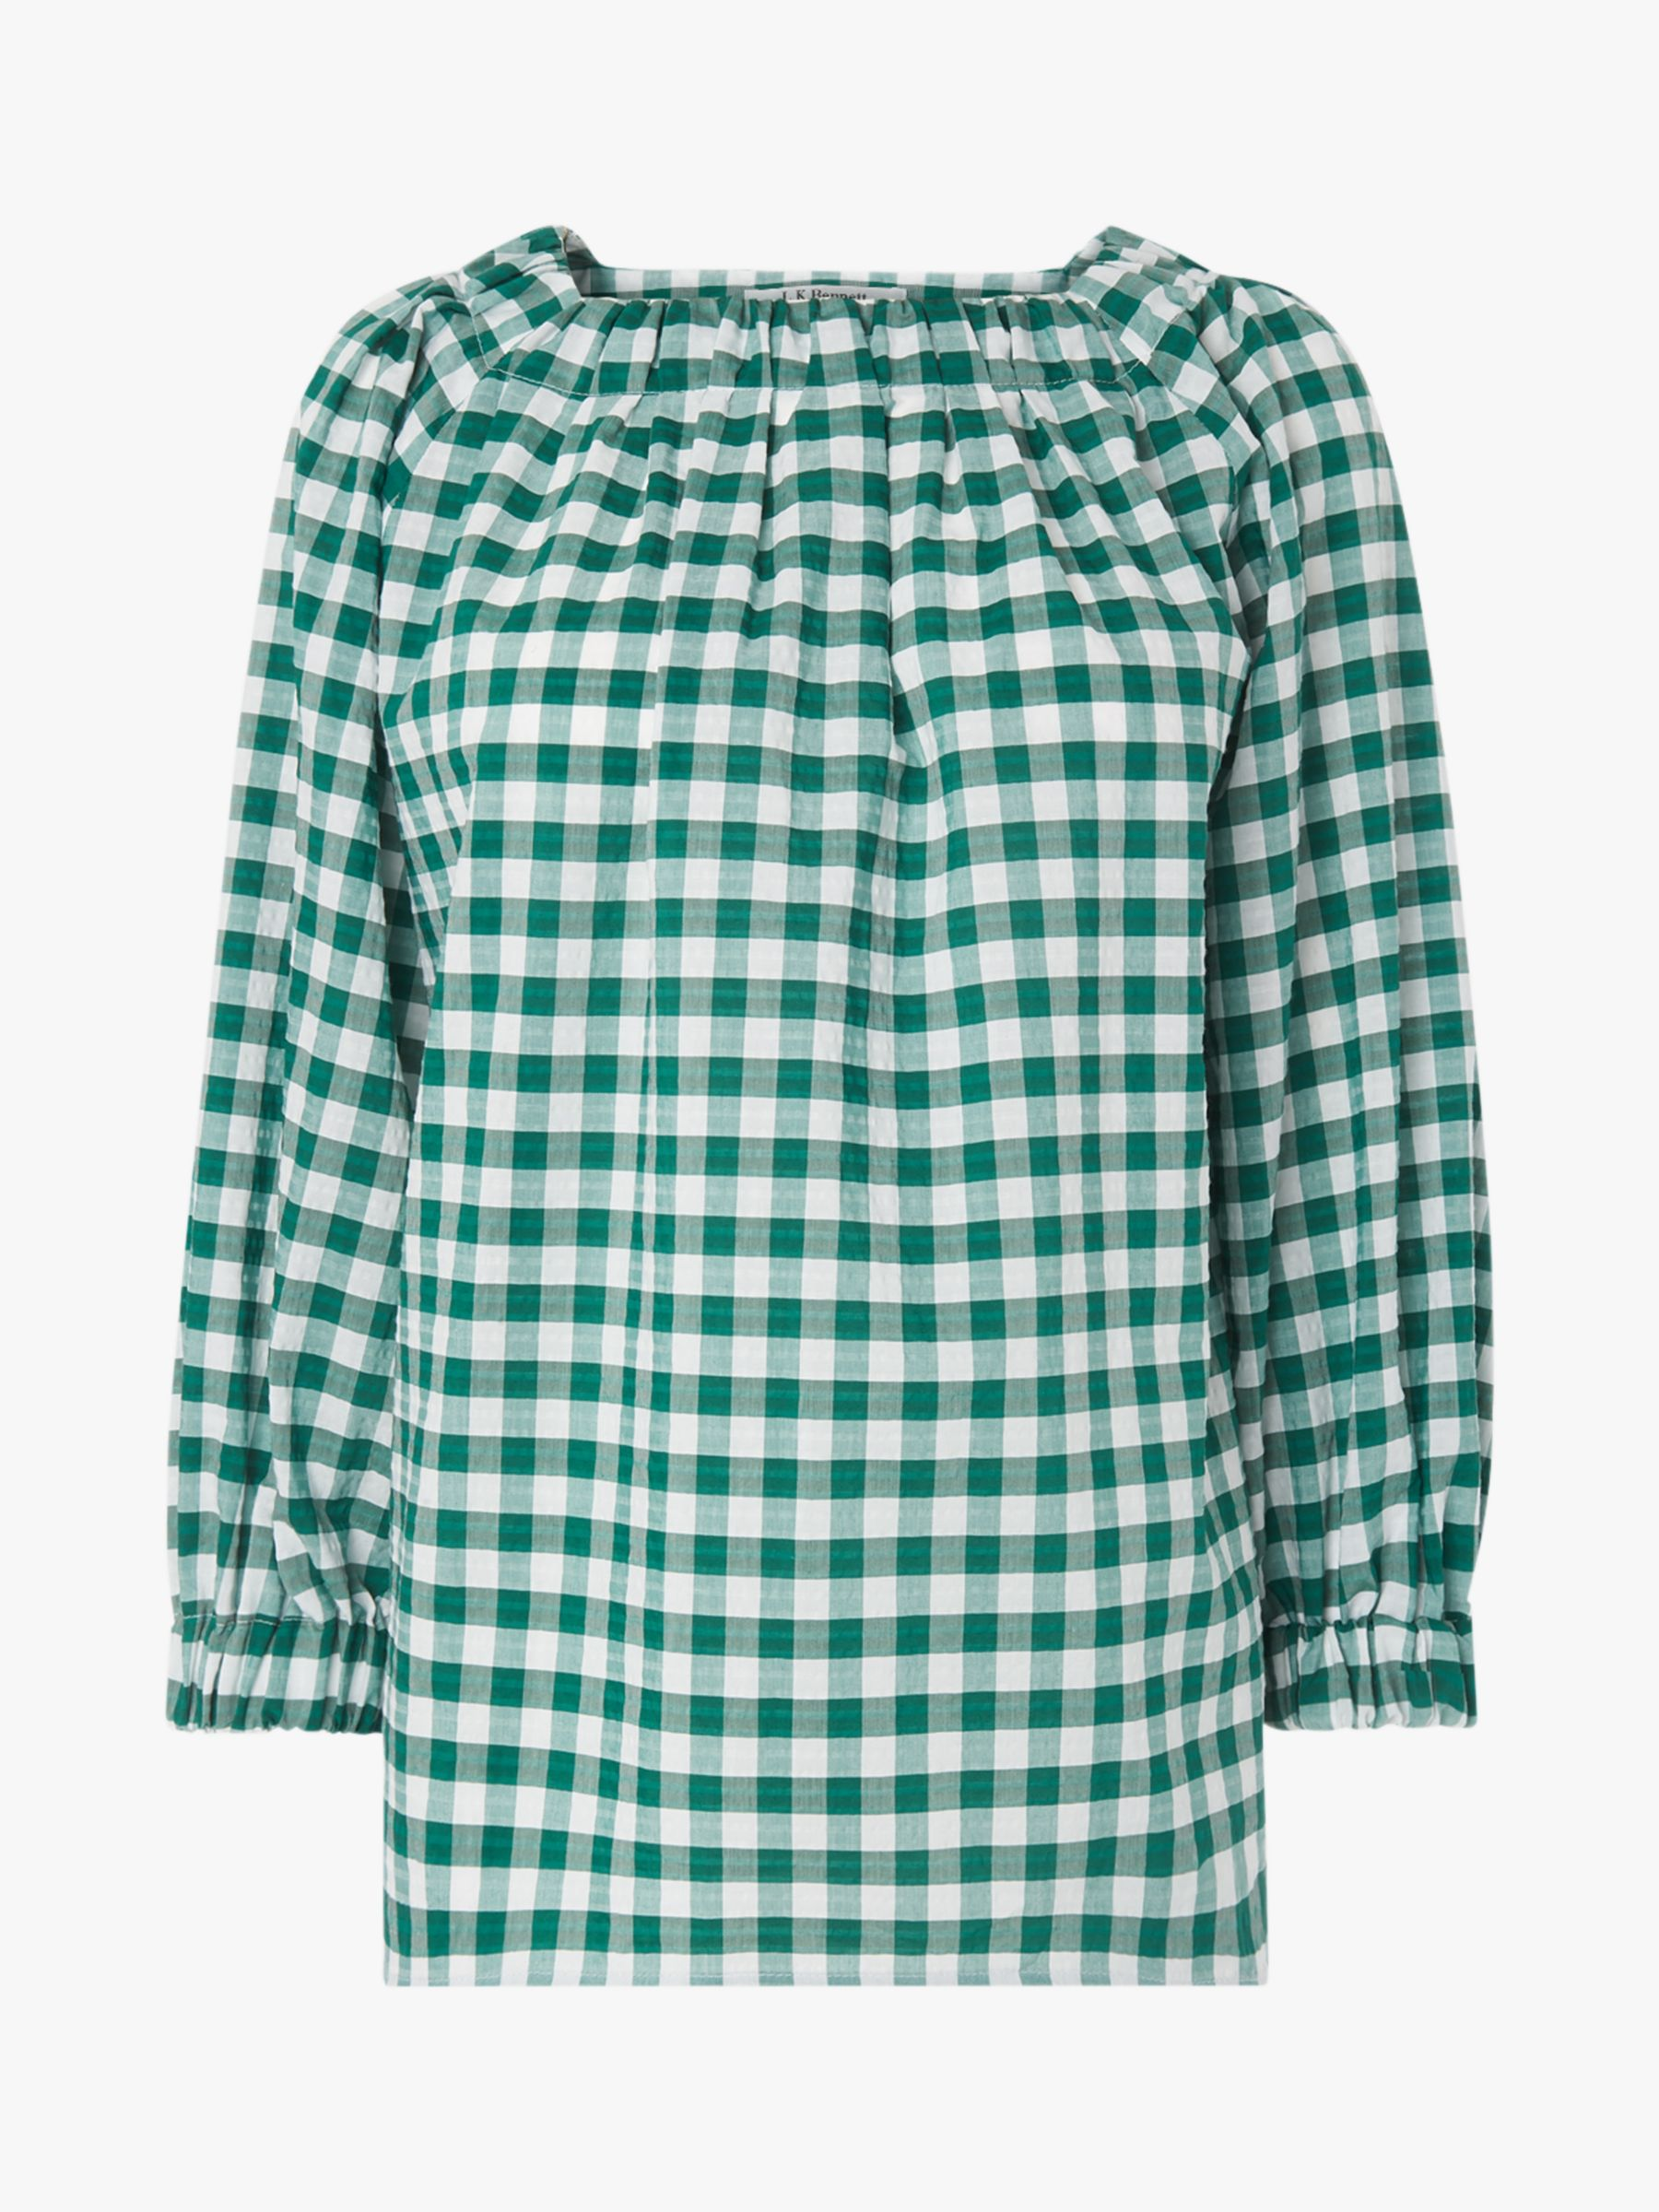 034c702bdb L.K.Bennett Saffron Gingham Print Top, Green/White at John Lewis & Partners